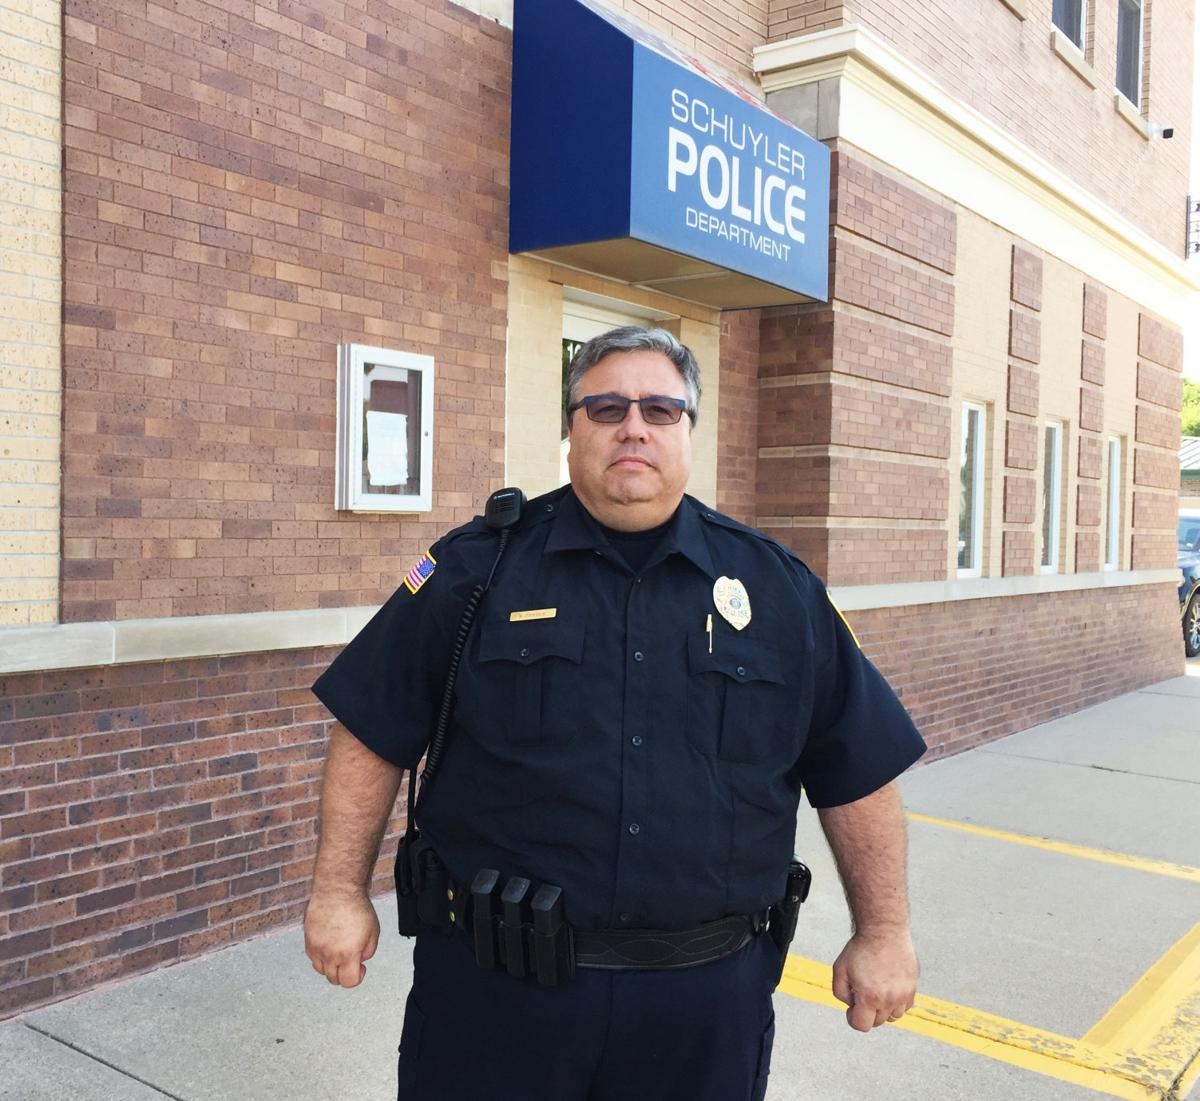 Farber police chief